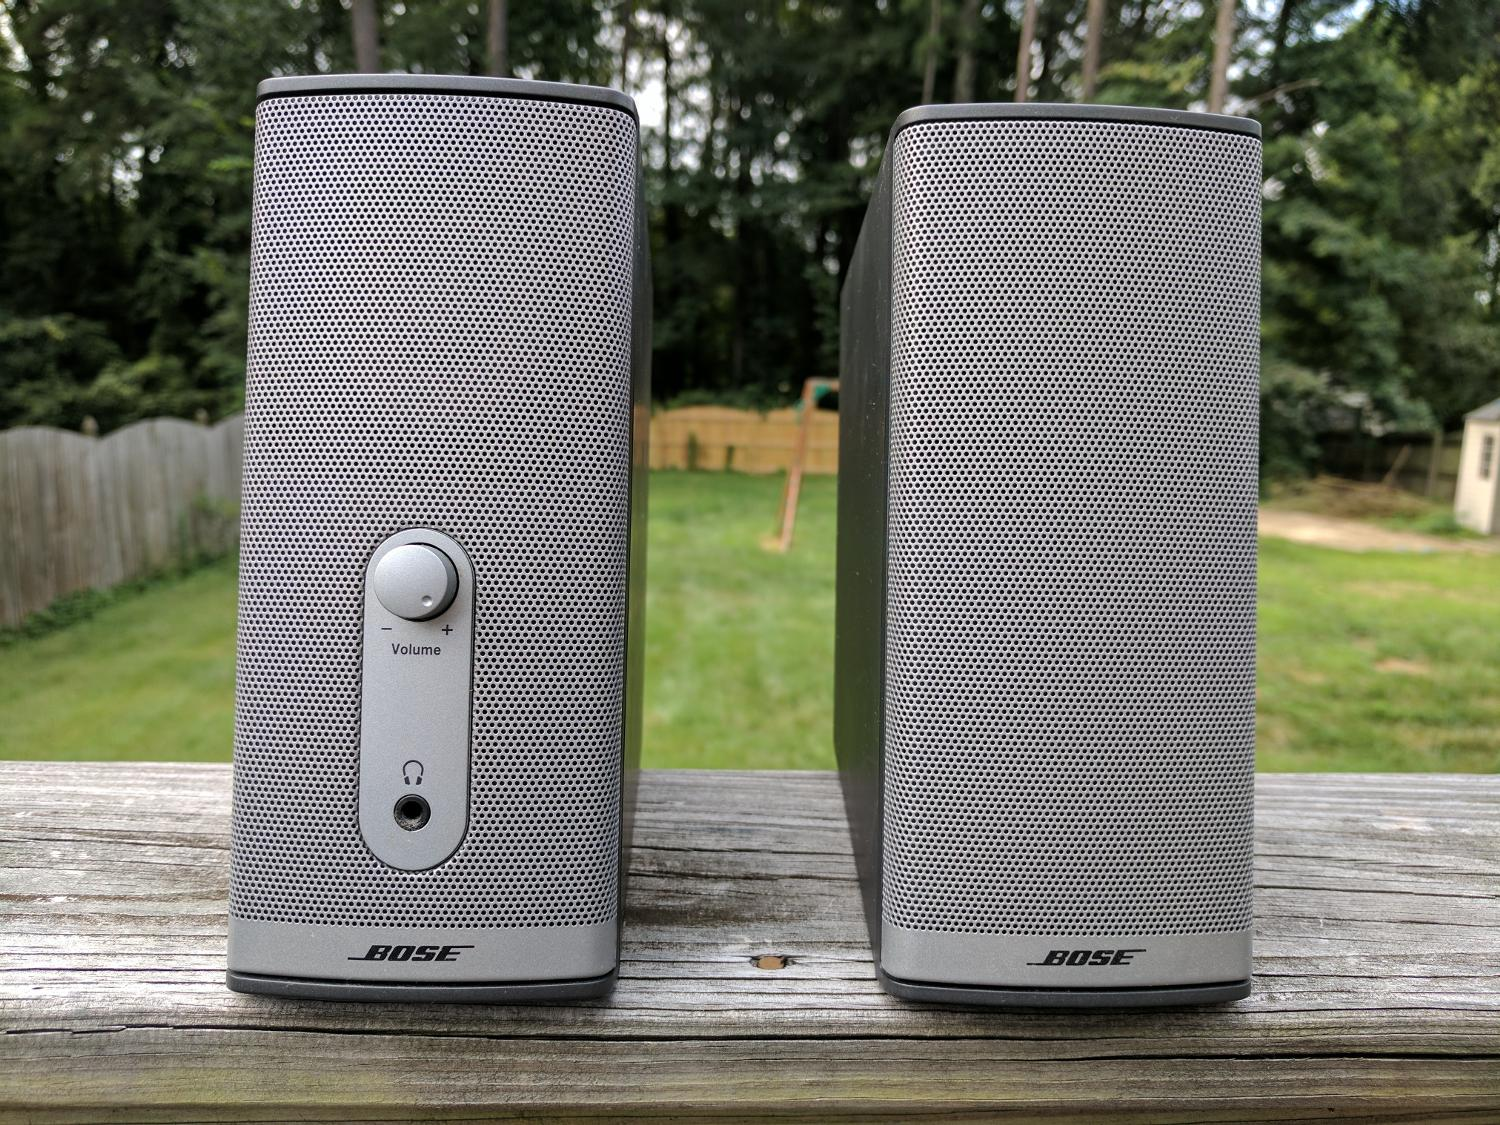 Best Bose Companion 2 Series Ii Multimedia Speaker System For Sale In Richmond Virginia For 2021